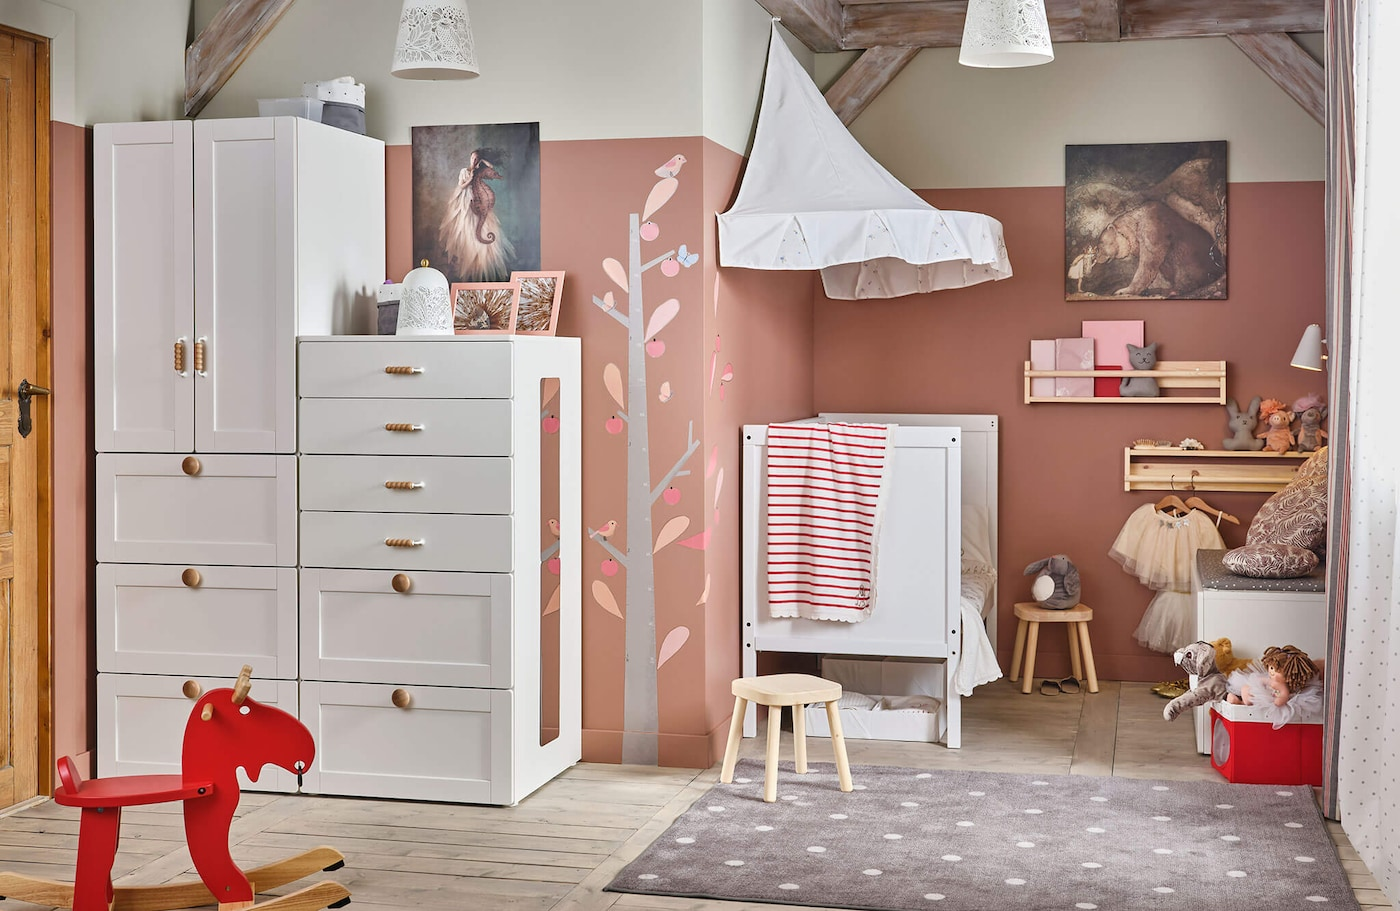 A white SMÅSTAD storage unit in a room with a white child's bed and other furniture, with a red rocking moose.